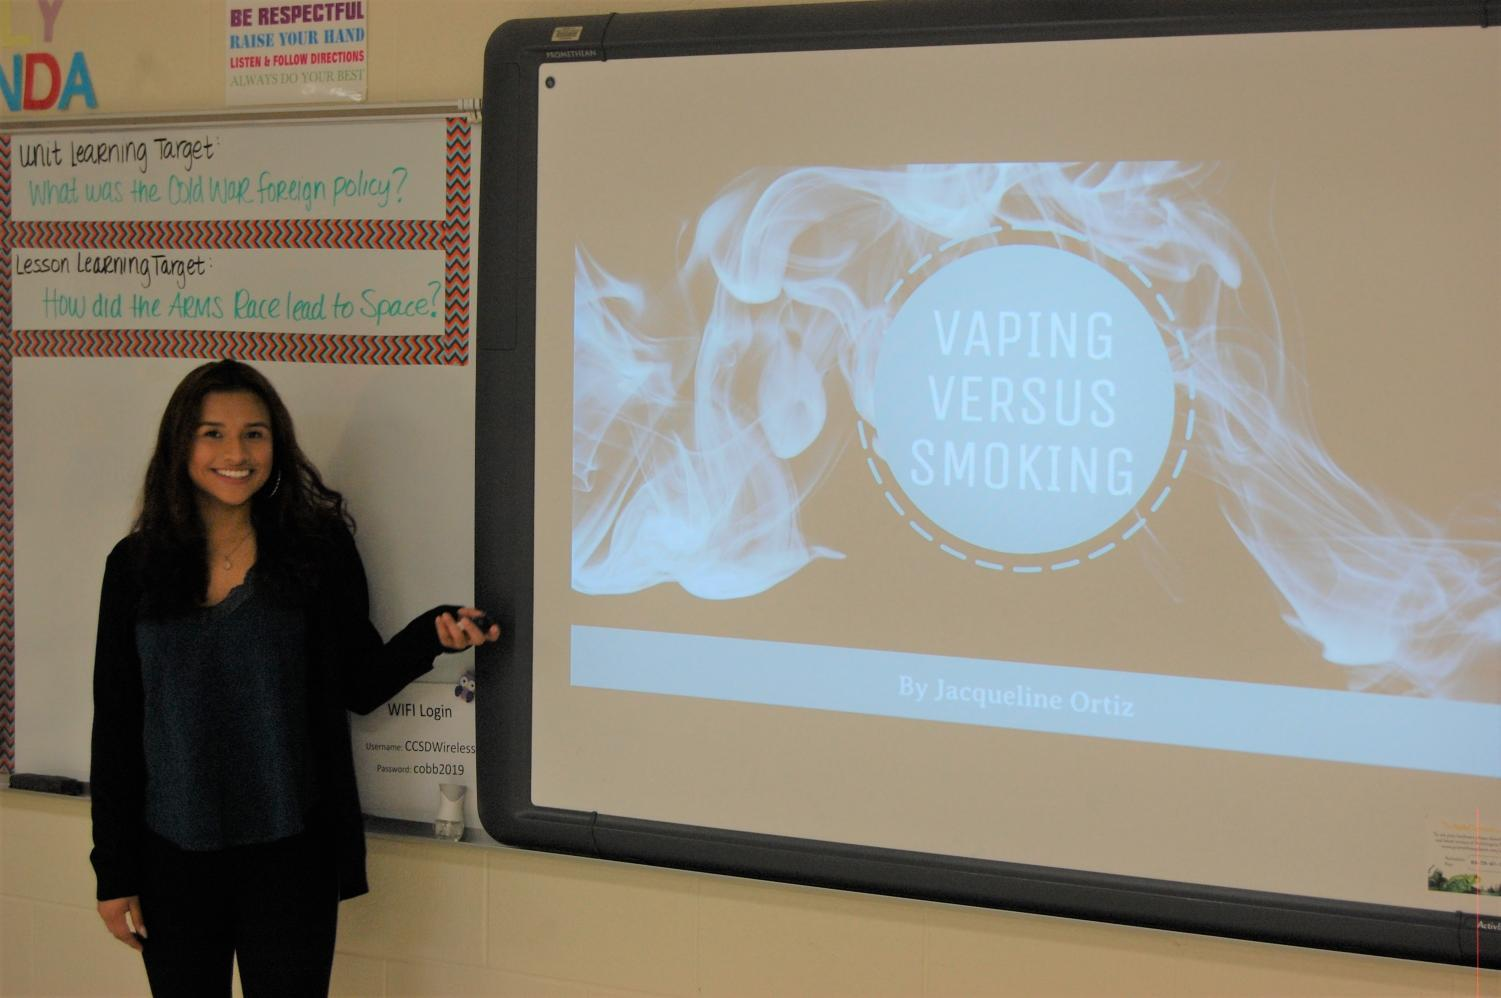 "Magnet senior Jacqueline Ortiz delivers her research presentation, titled ""Vaping versus Cigarette Smoking: Generational Perspectives."" After years of focused instruction, these seniors used their developed researching skills to study a modern topic of their choosing. Using collected data and graphs to visually represent their information, all the presentations featured a minimum 12-minute discussion and post questioning."